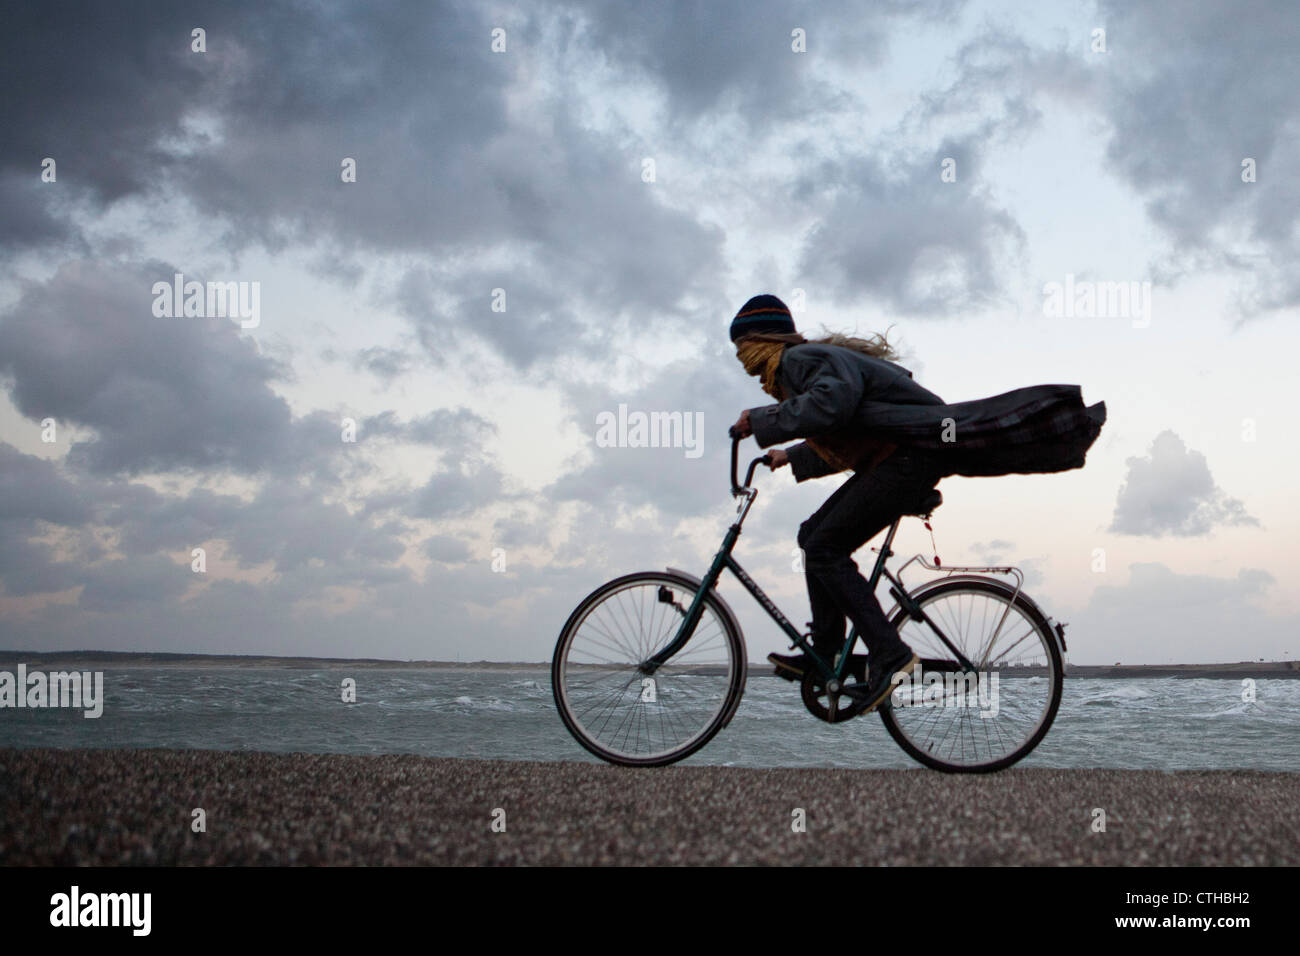 The Netherlands, Kamperland, Woman cycling against the stormy wind. Stock Photo